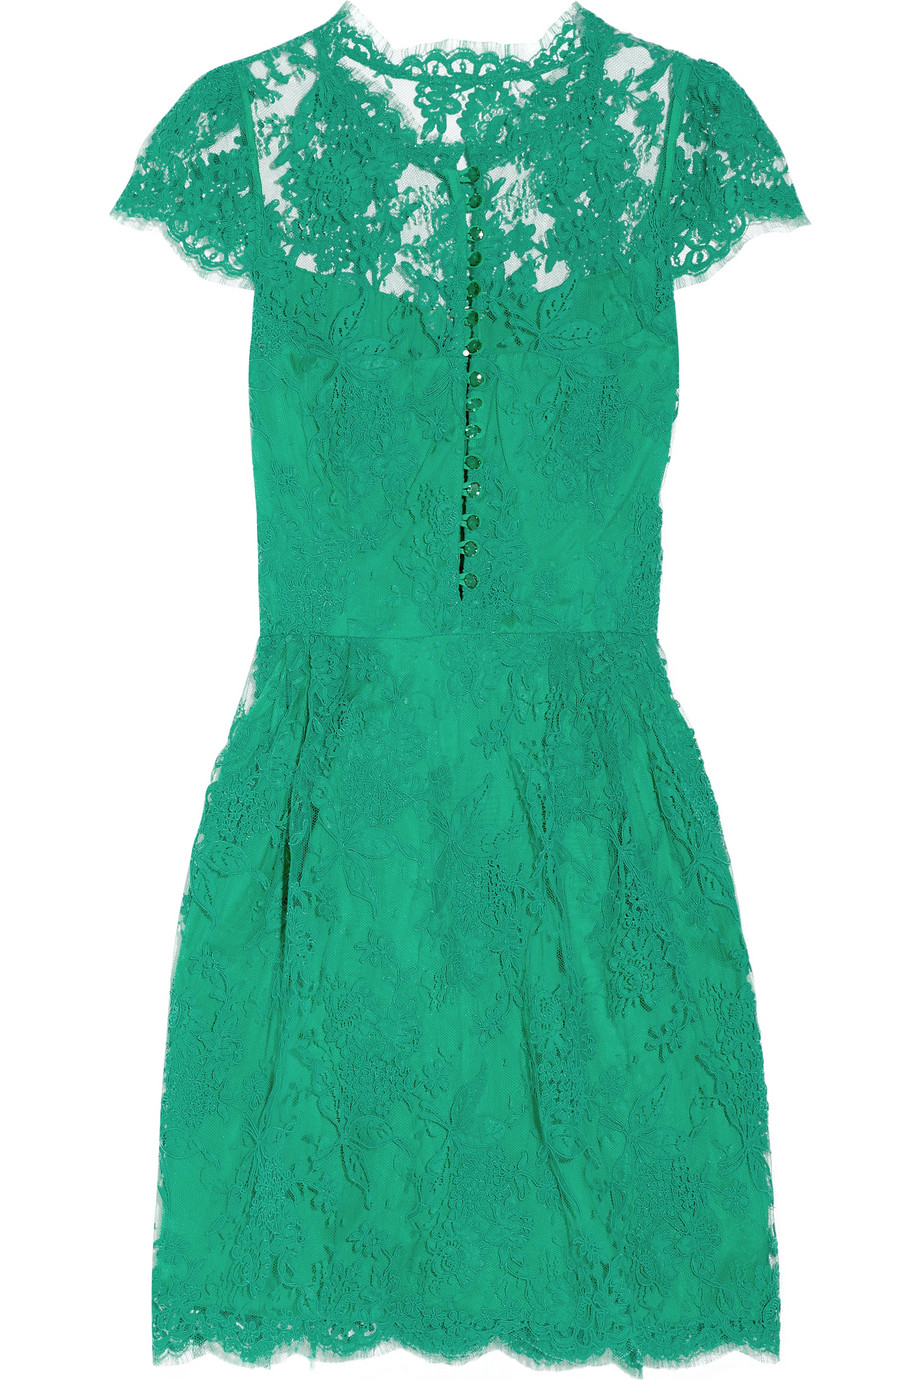 Issa Cap-sleeve Lace Dress in Green | Lyst